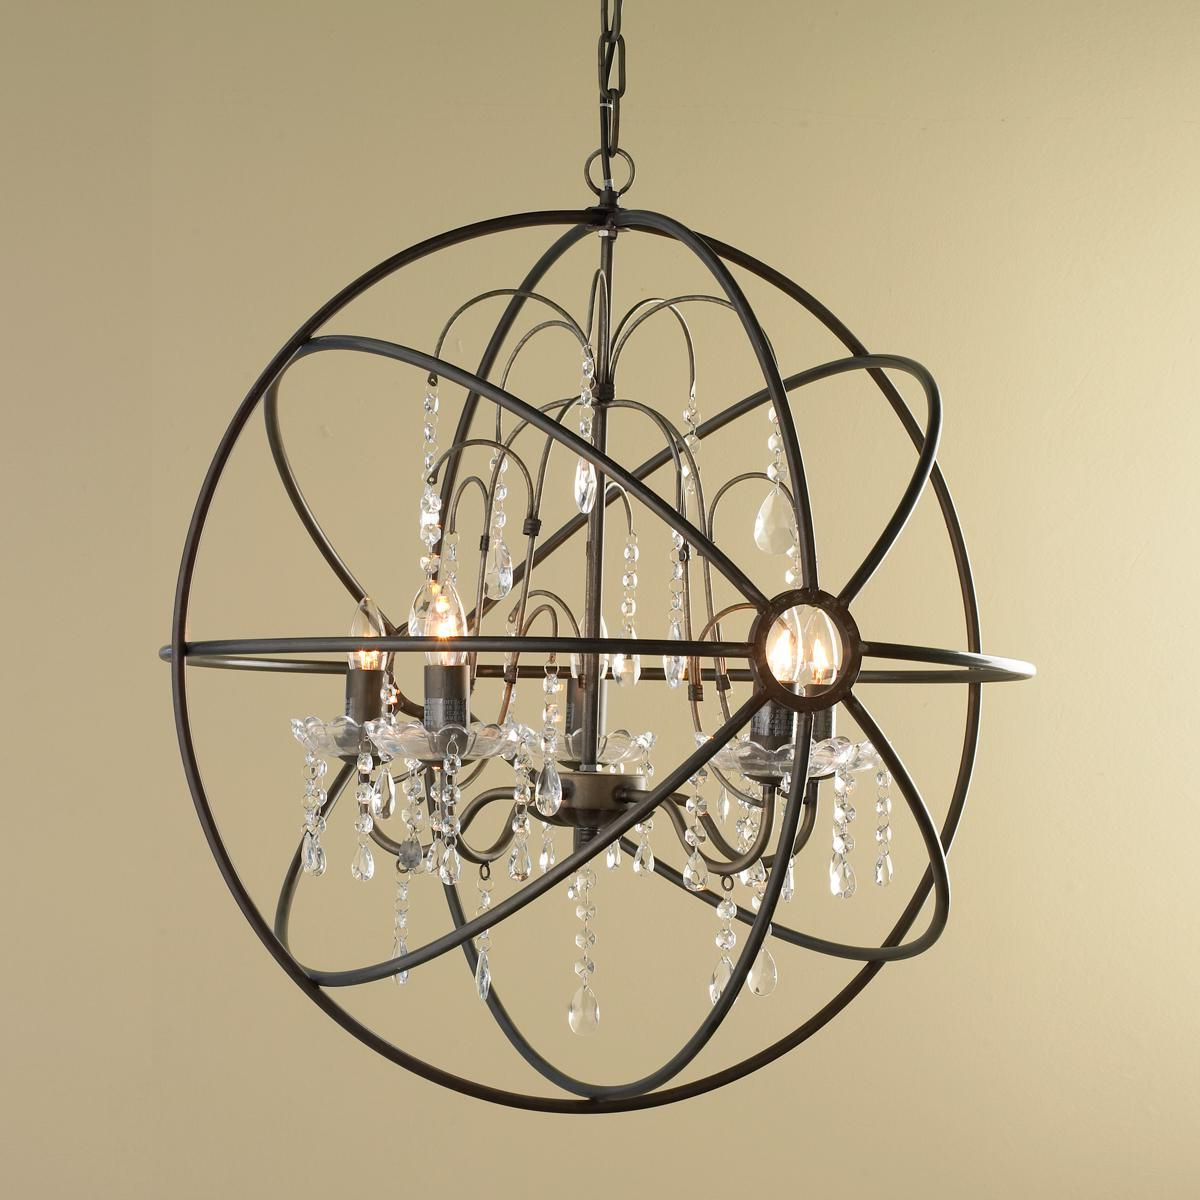 Widely Used Alden 3 Light Single Globe Pendants In Crystal And Metal Orb Chandelier (Gallery 17 of 20)